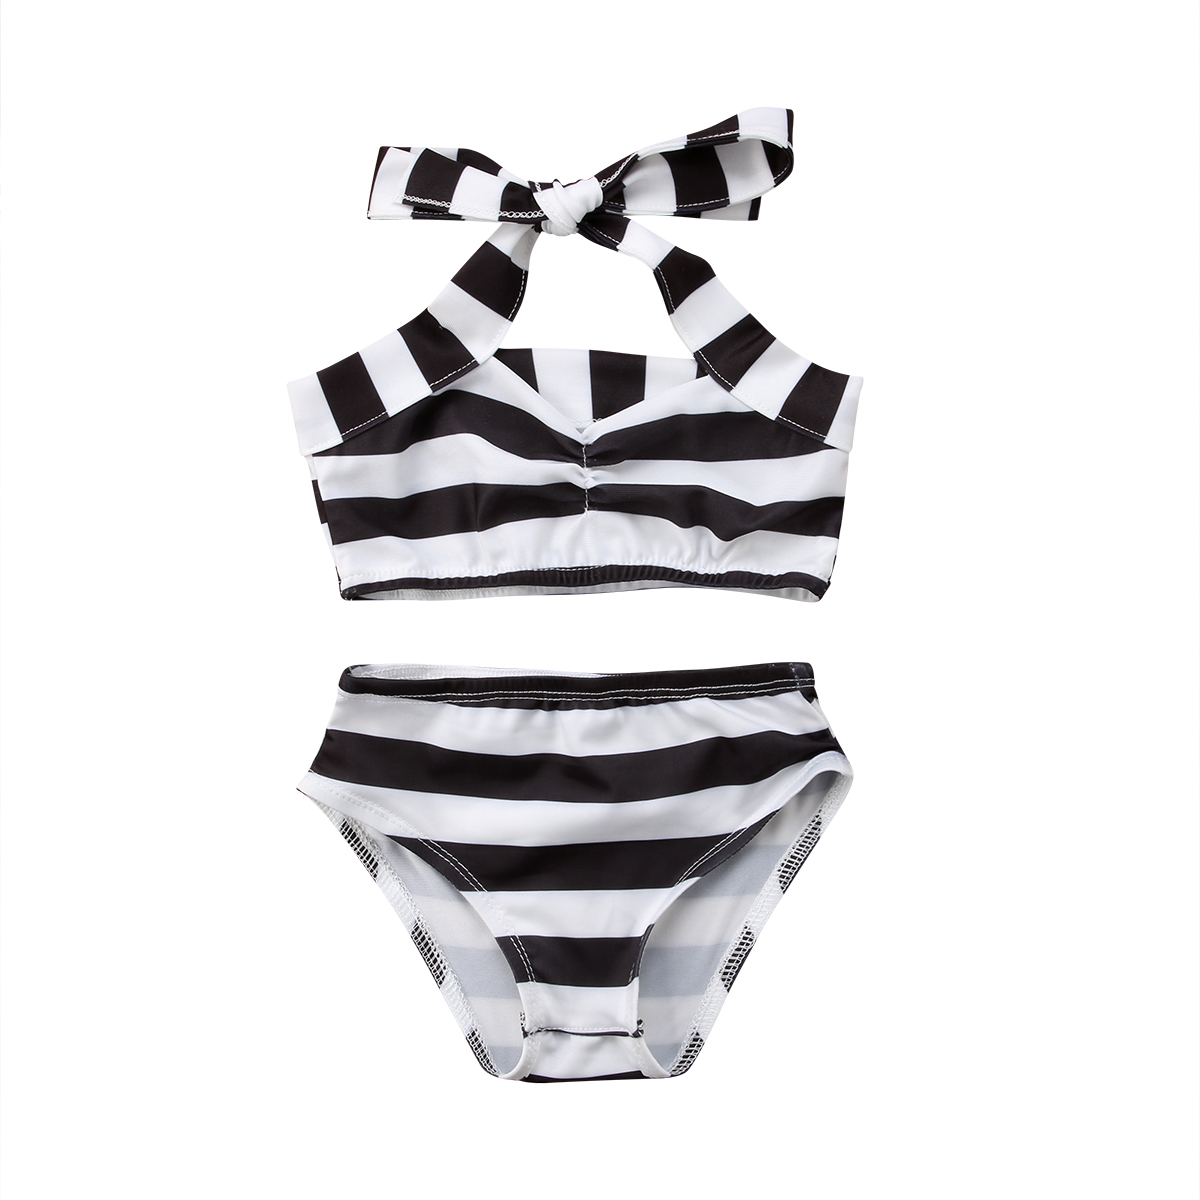 Toddle Kids Baby Girls Clothes Stripe Swimwear Swimsuit Bathing Suit Beachwear 2Ppcs Blackless Swimsuits Summer Outfits 0-3T